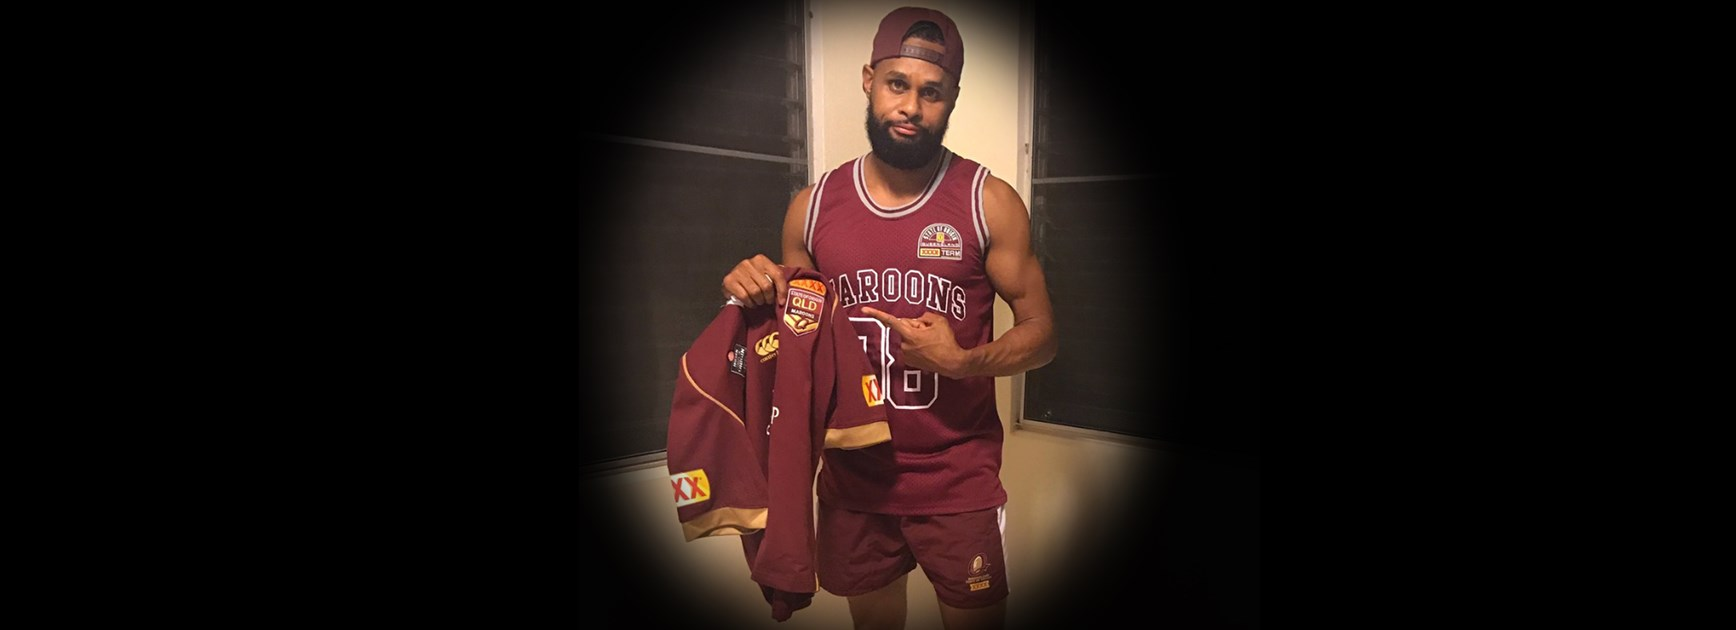 Why Patty Mills is made for Maroons camp: Walker